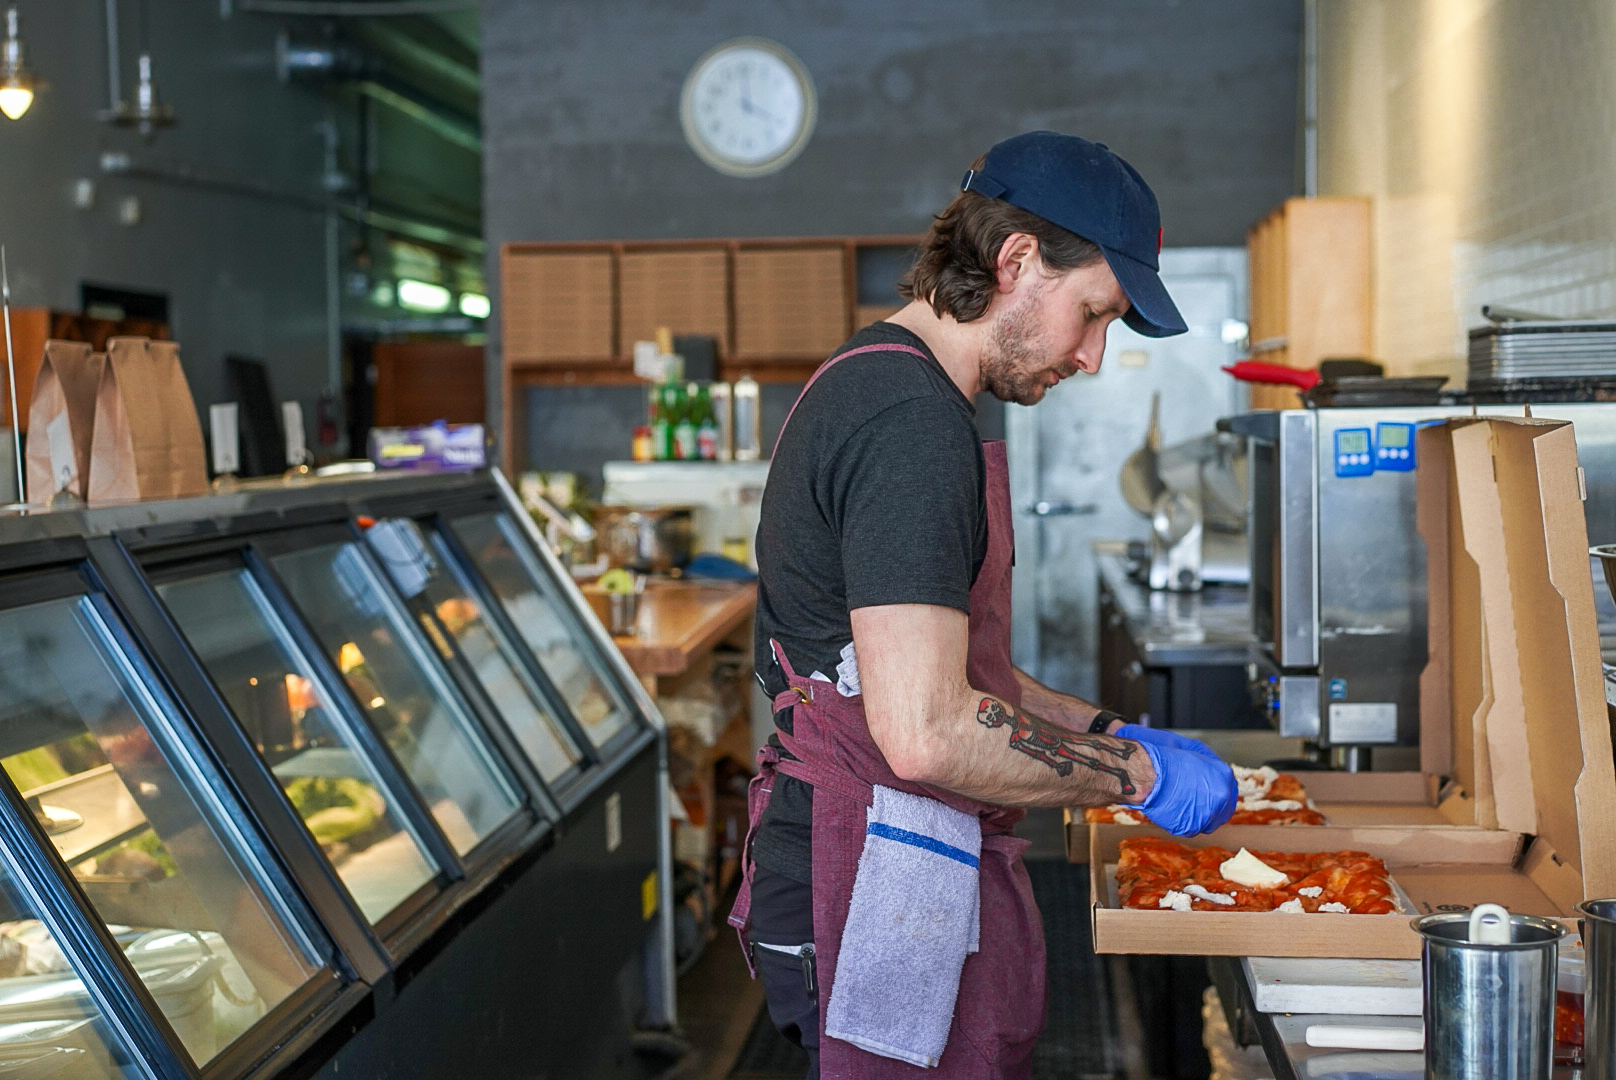 A worker prepares pizzas in to-go boxes inside a cafe